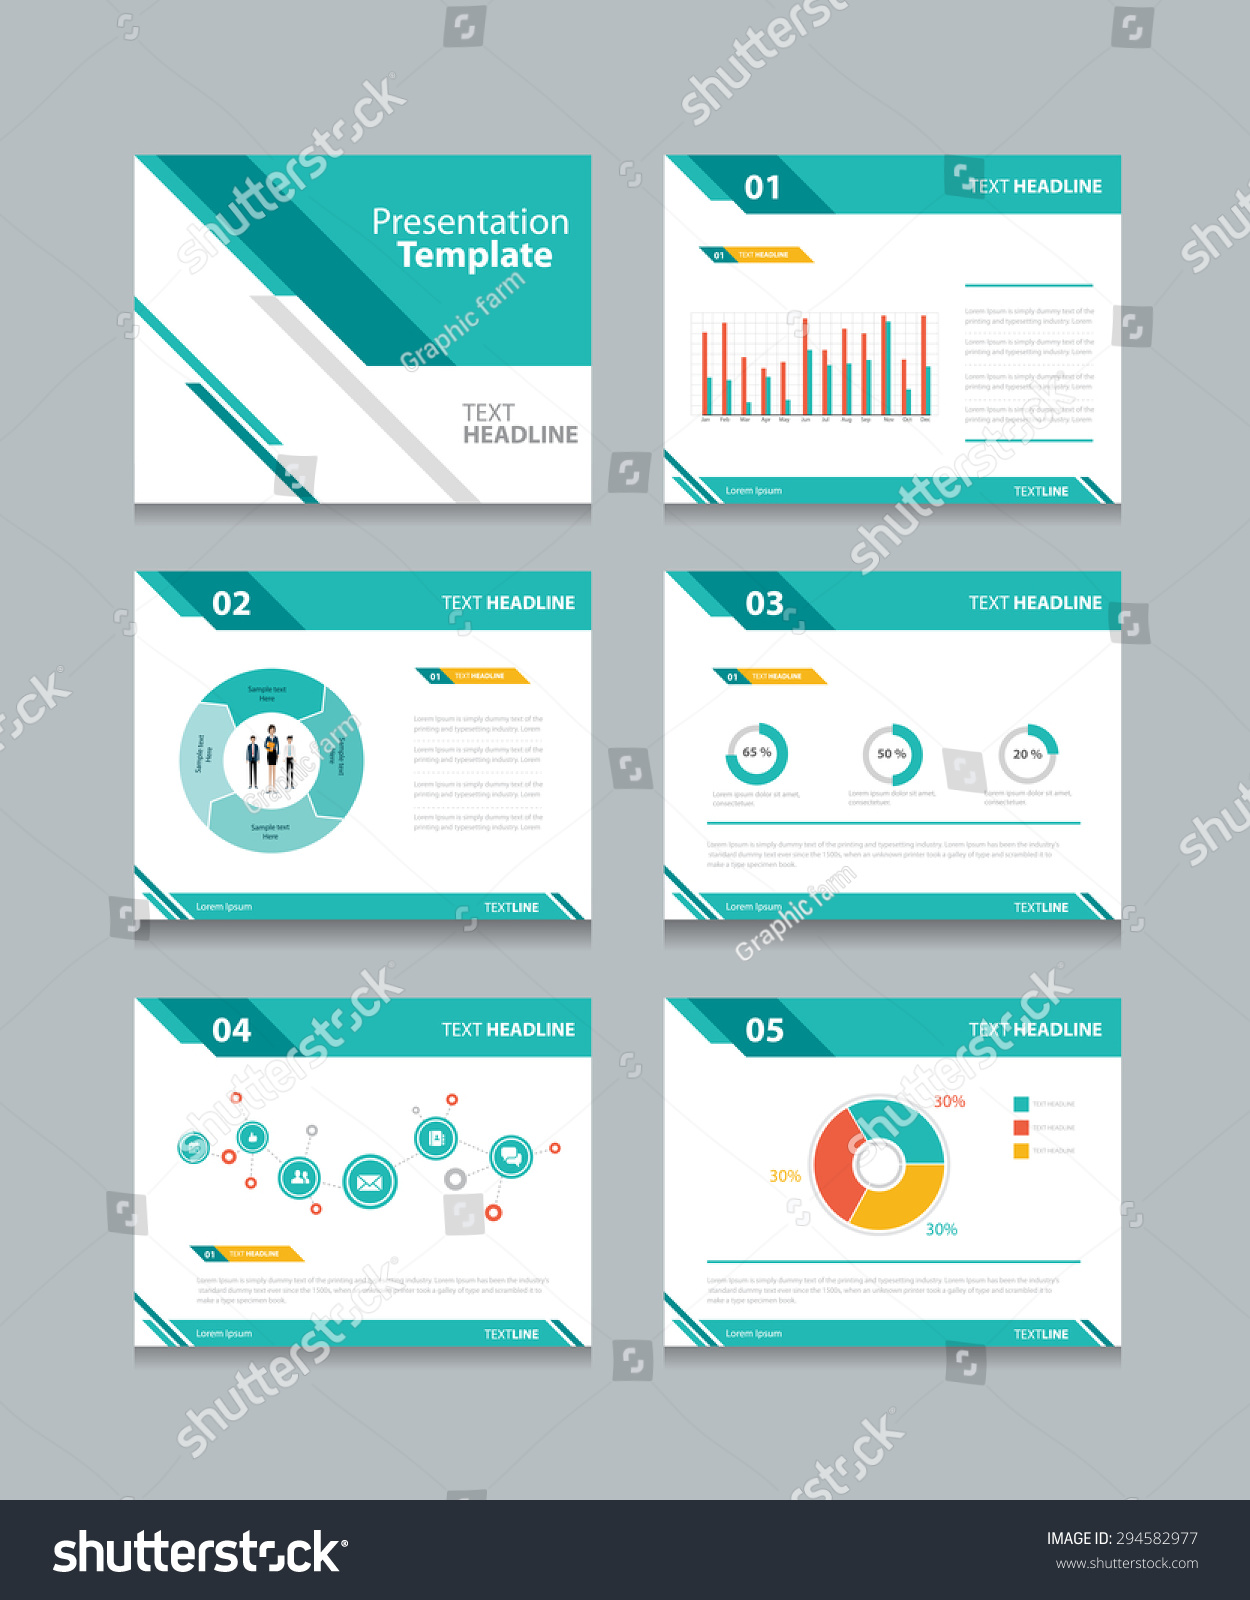 Business presentation template setpowerpoint template for How to set up a powerpoint template